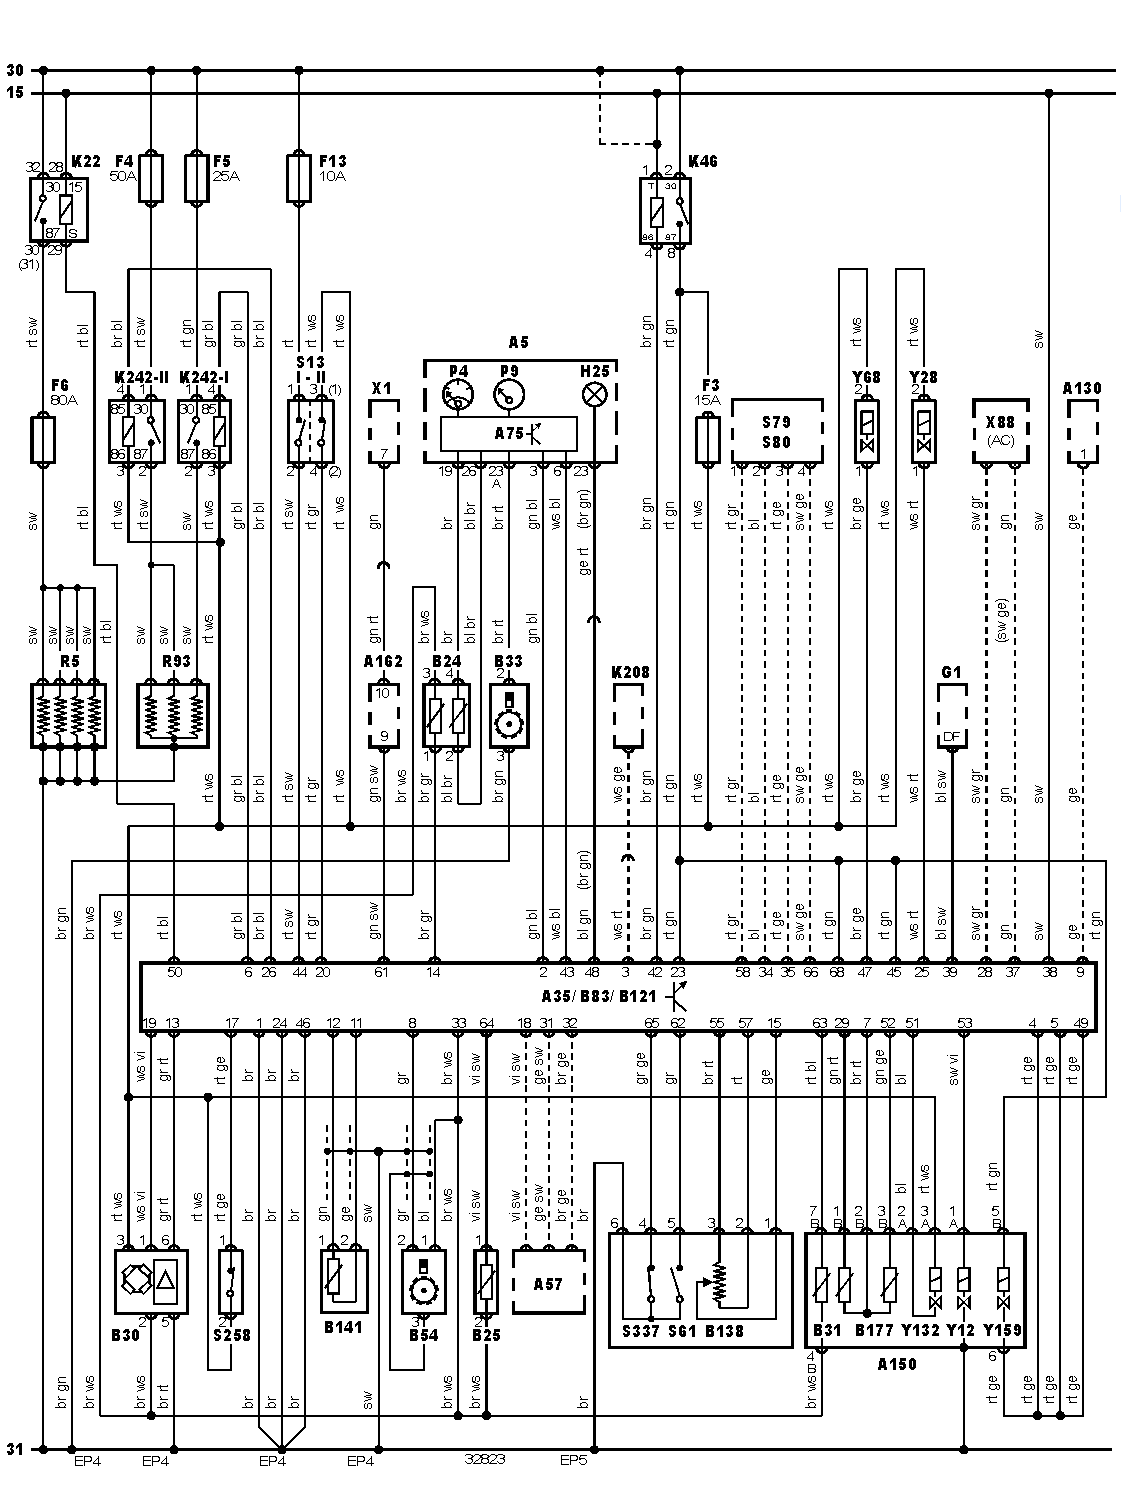 Audi Tt Mk2 Fuse Box Diagram Wiring Library Mini Cooper Vw Jetta Tdi Ecu